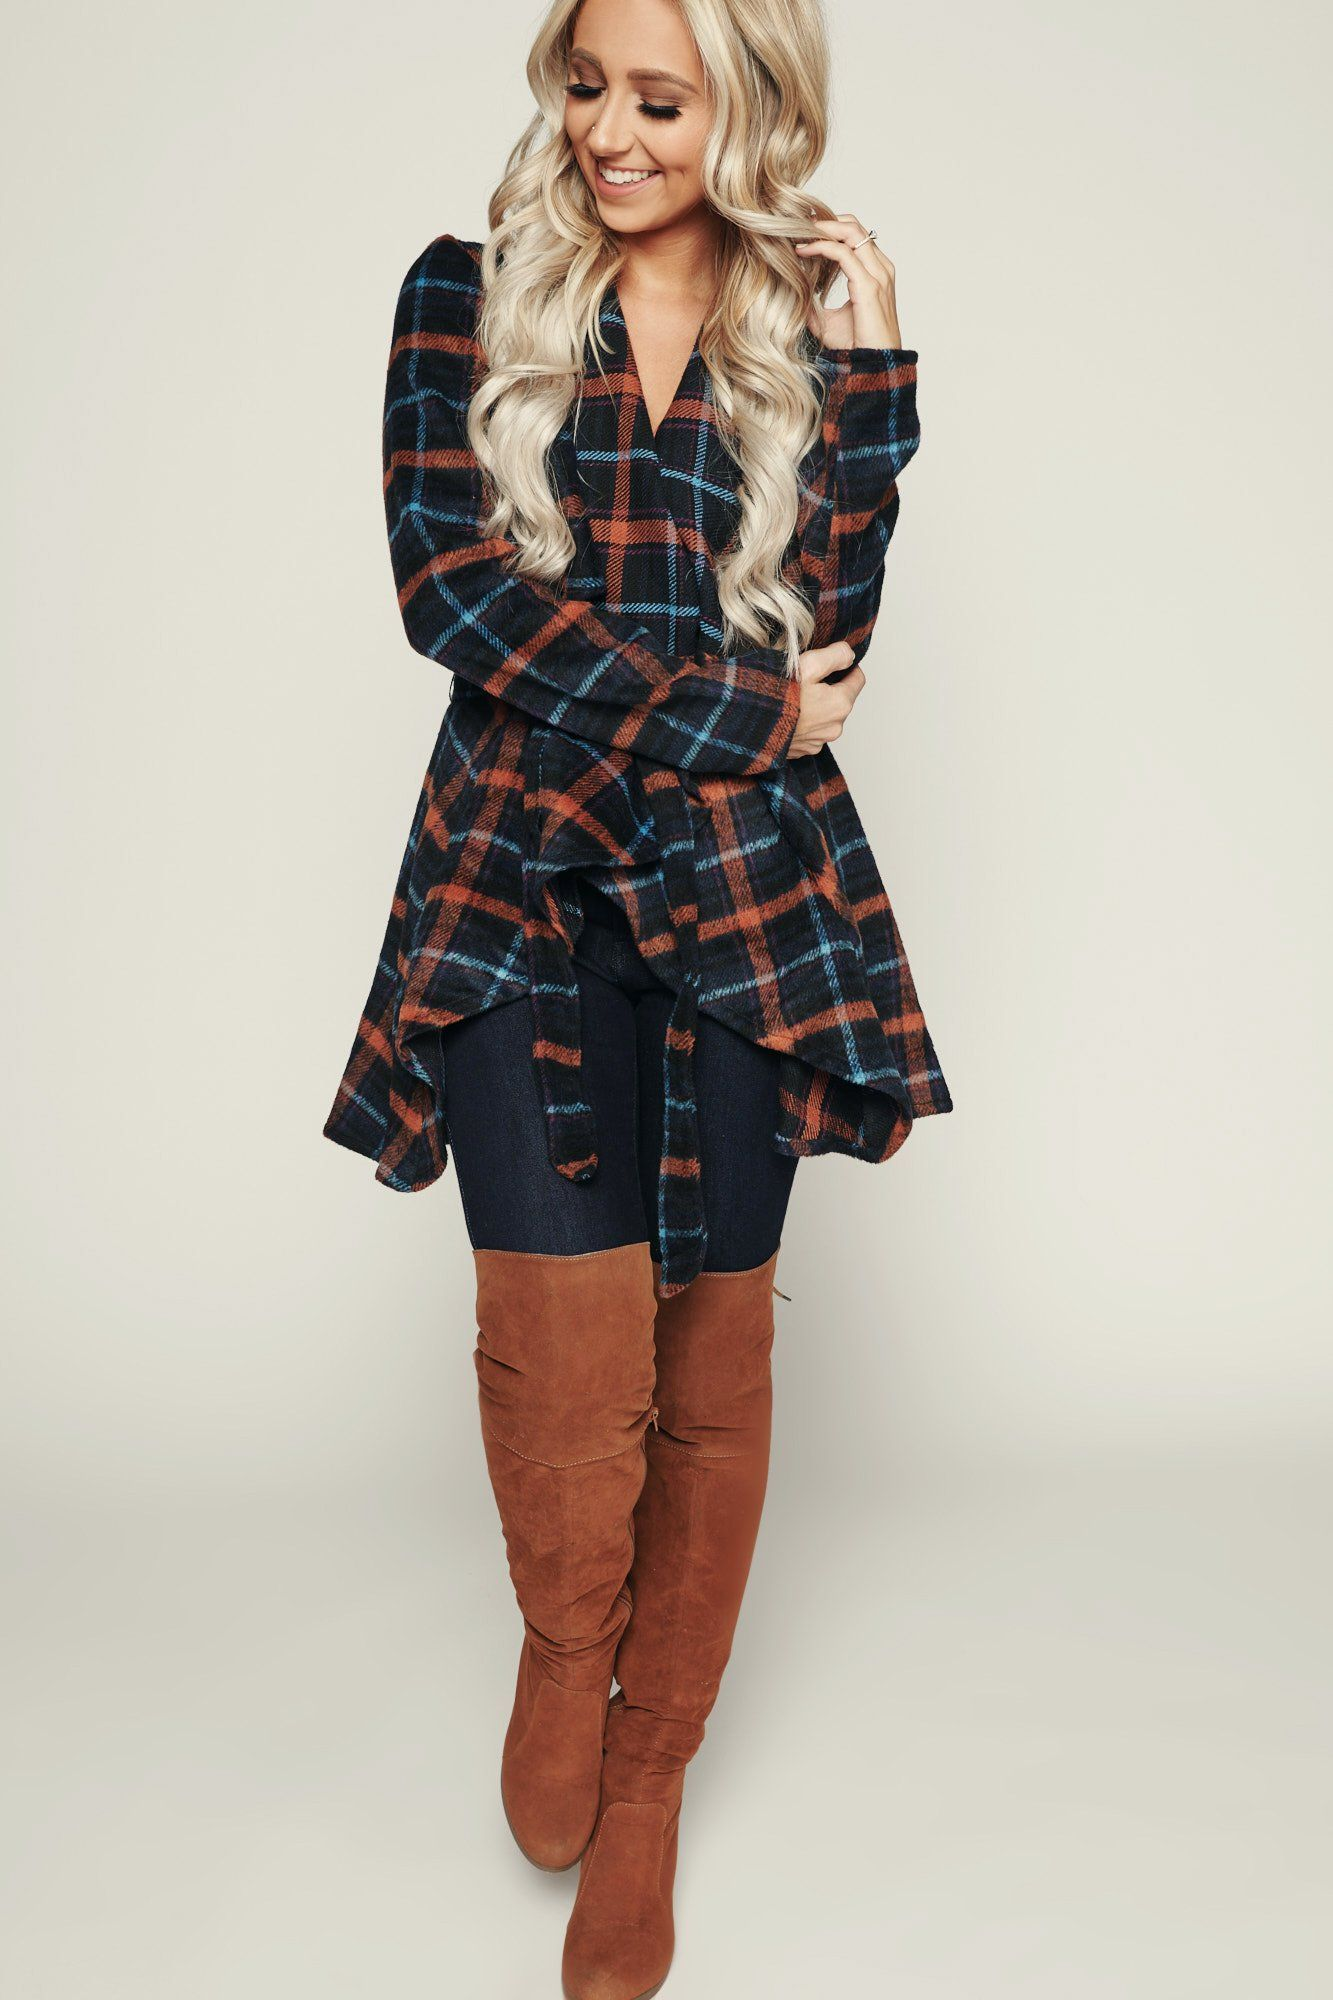 Best For Me Plaid Jacket Navy Trendy Clothes For Women